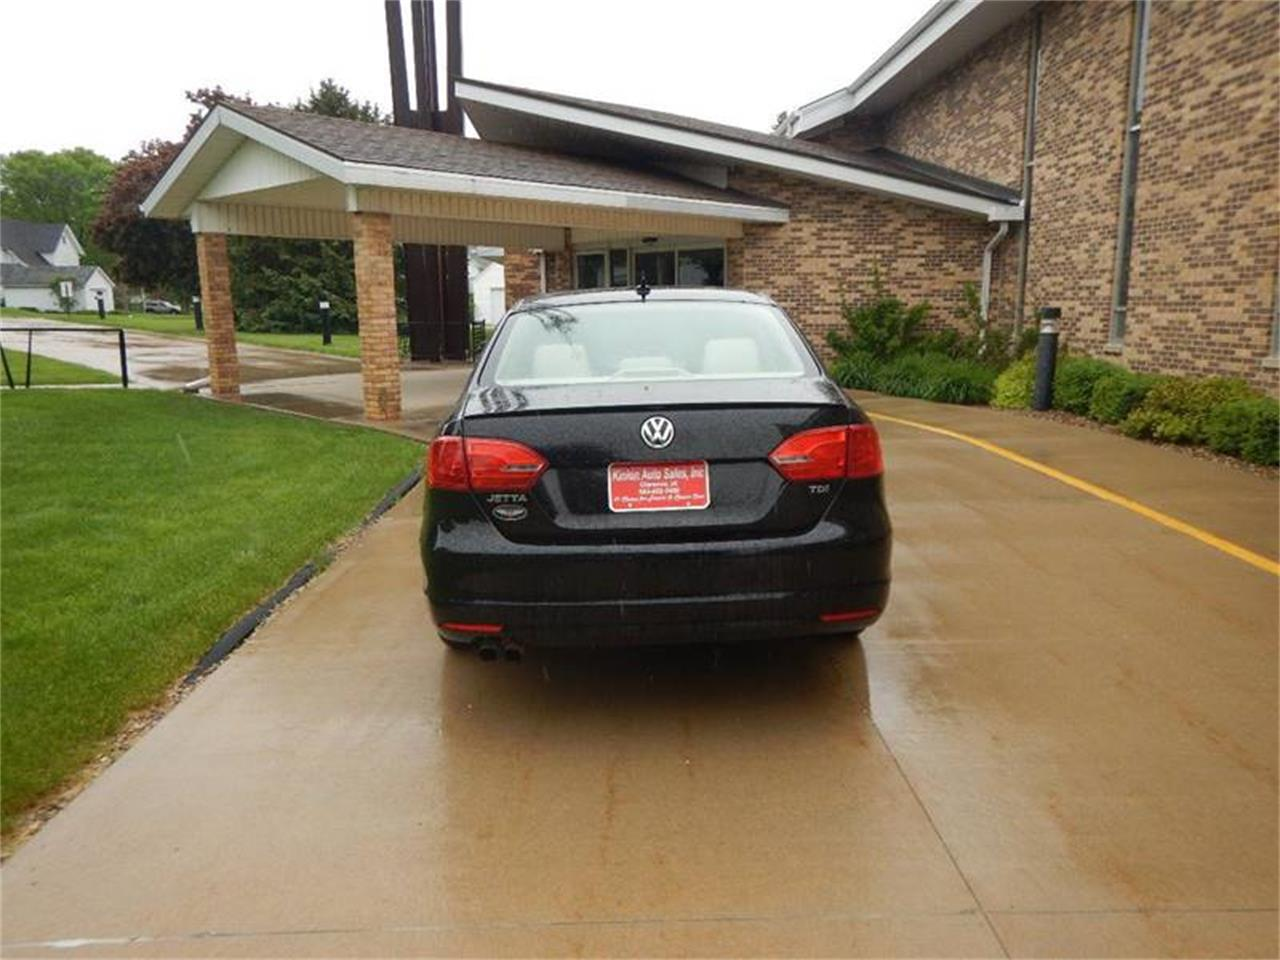 Large Picture of '12 Volkswagen Jetta located in Clarence Iowa - $8,995.00 - Q48I